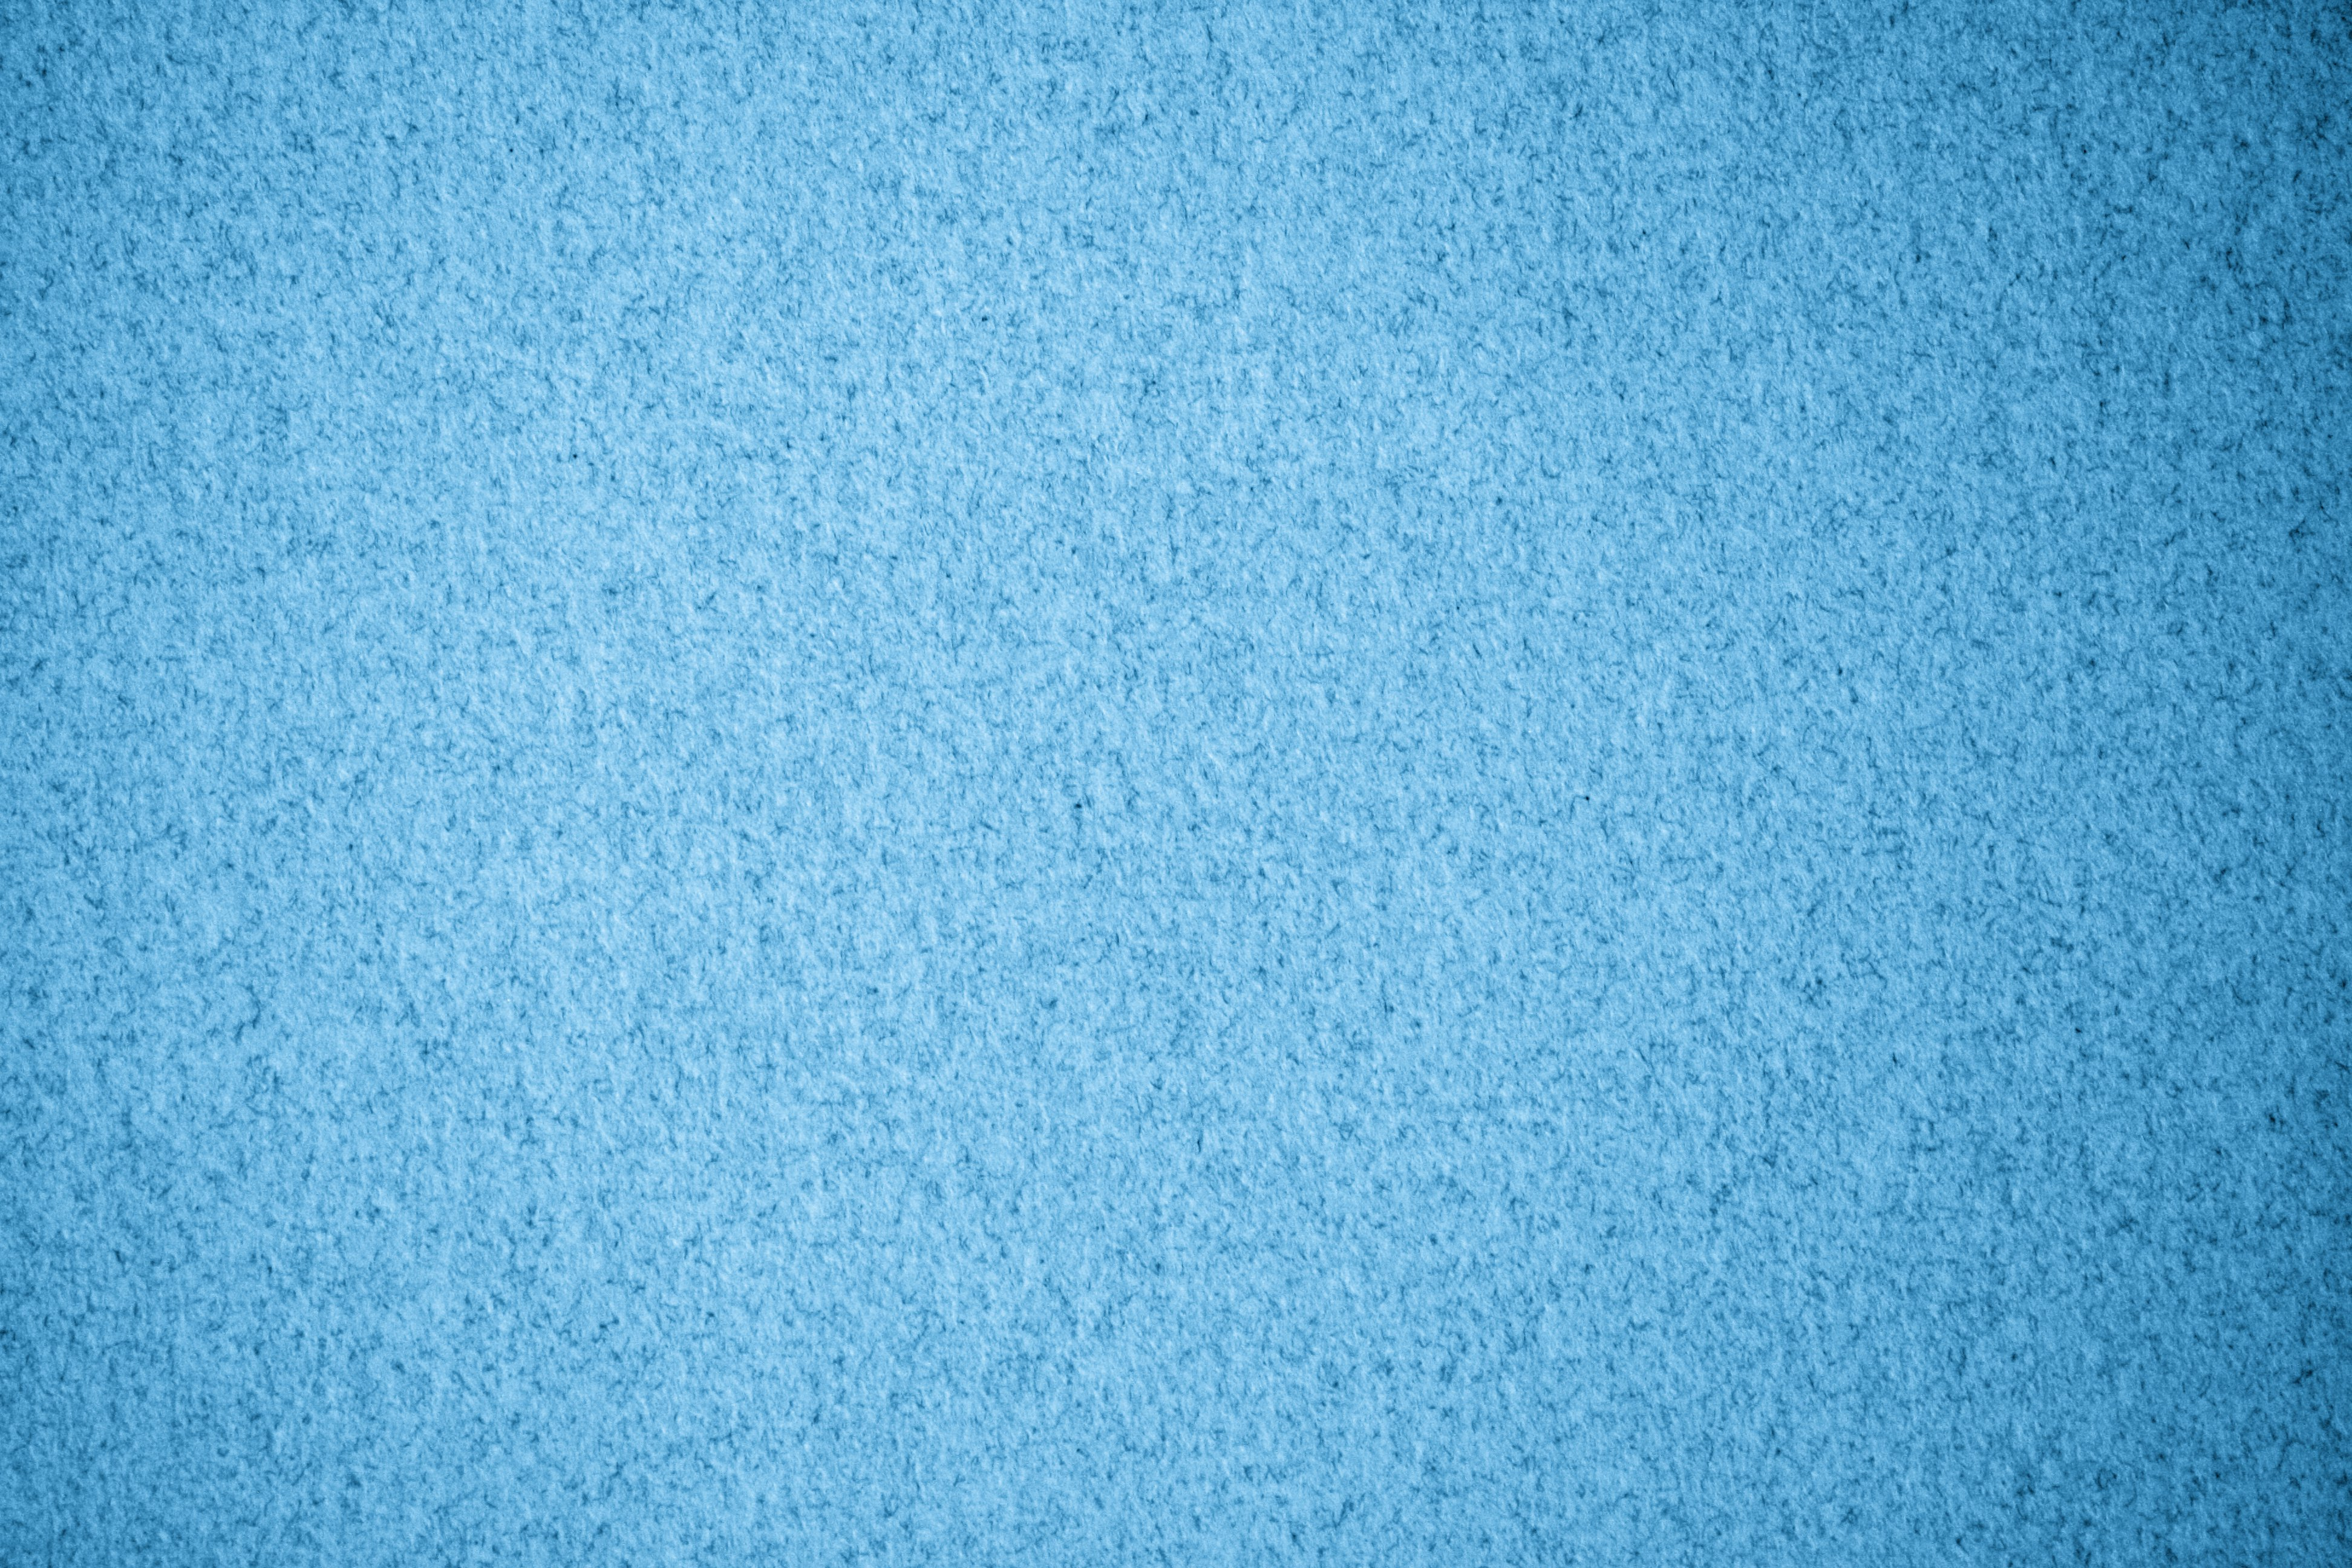 Sky Blue Speckled Paper Texture Picture | Free Photograph | Photos ...